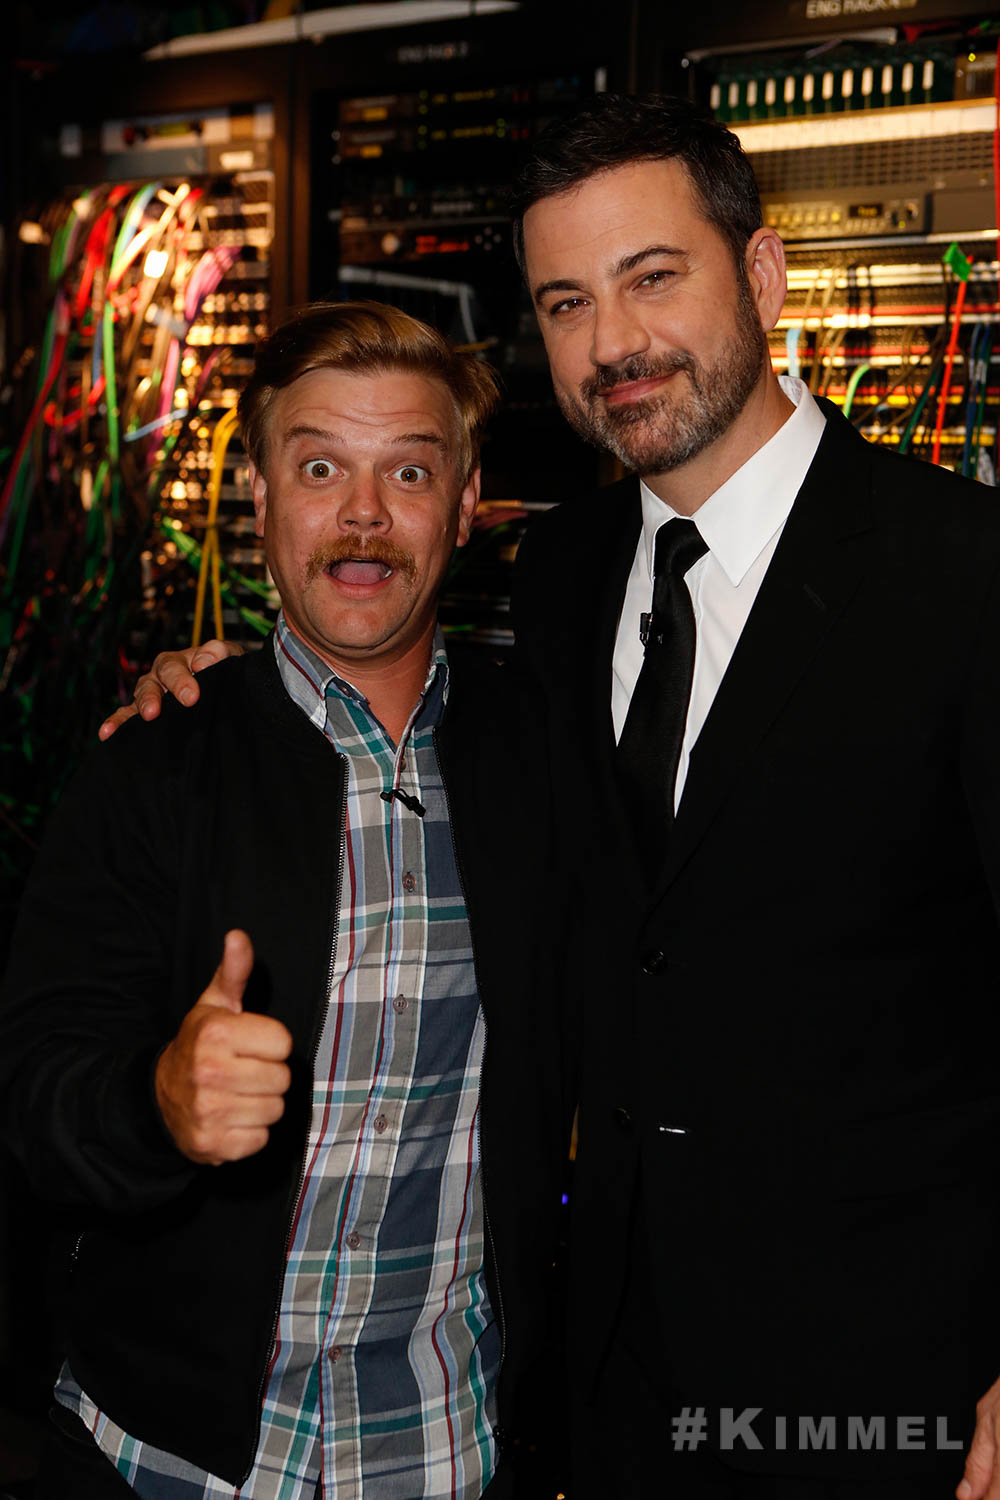 Jimmy Kimmel and Chris